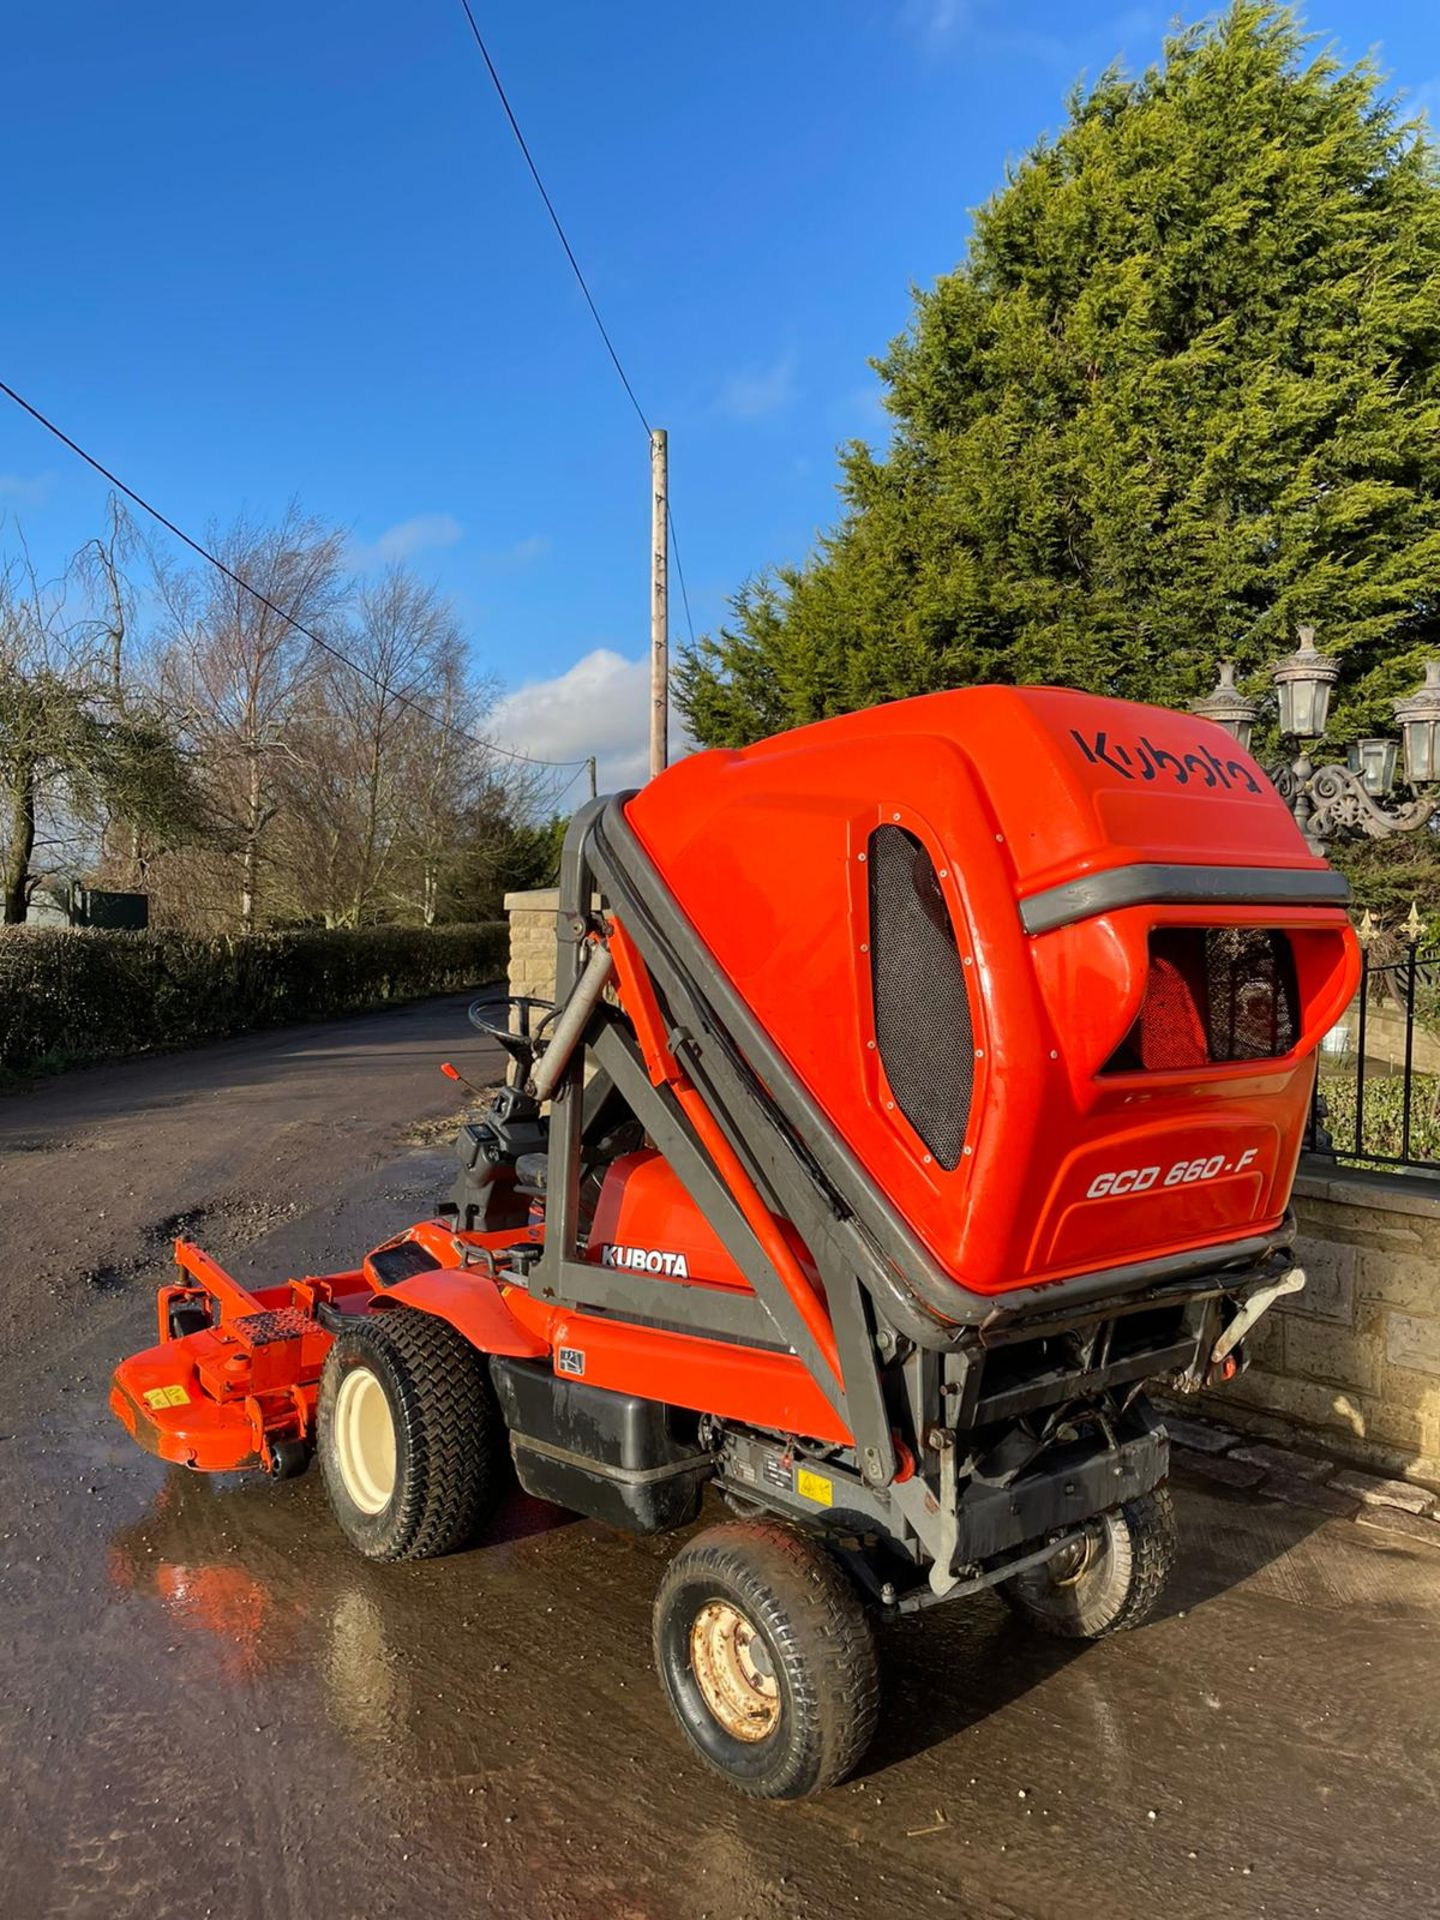 KUBOTA F3560 OUTFRONT RIDE ON LAWN MOWER, RUNS, DRIVES AND CUTS, HIGH TIP COLLECTOR *PLUS VAT* - Image 3 of 9